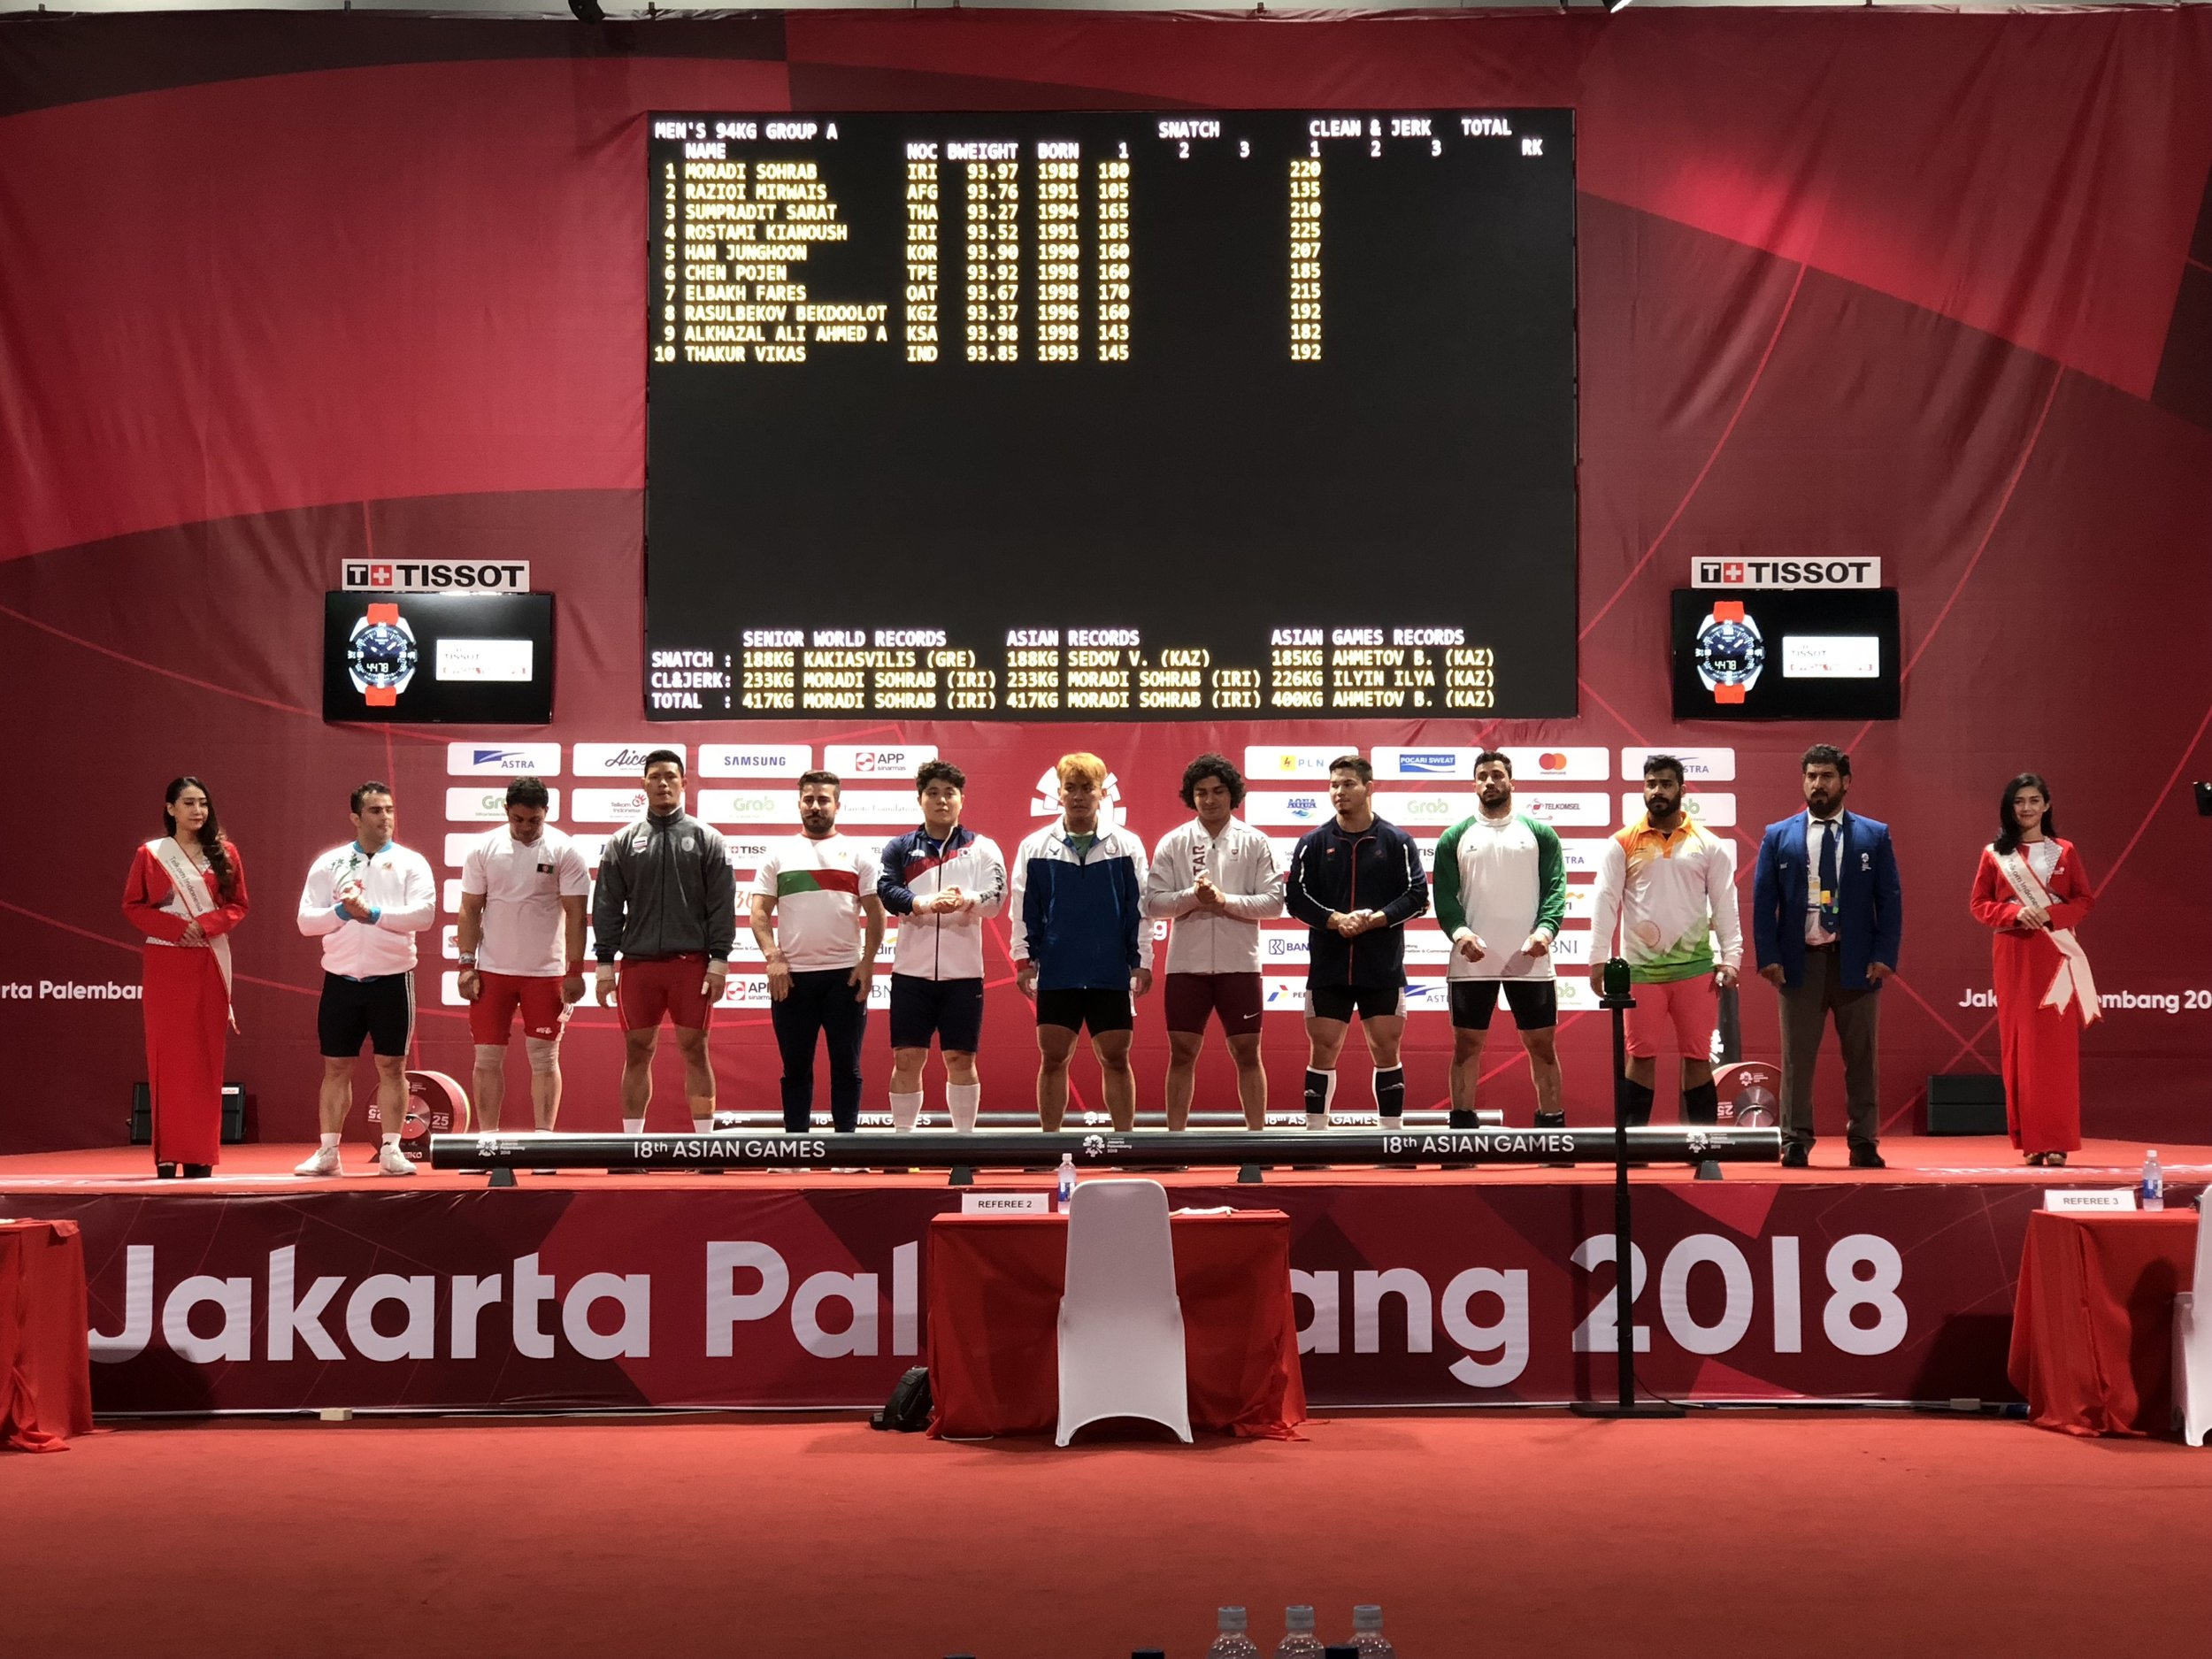 Setting the stage at weightlifting for Moradi's world record